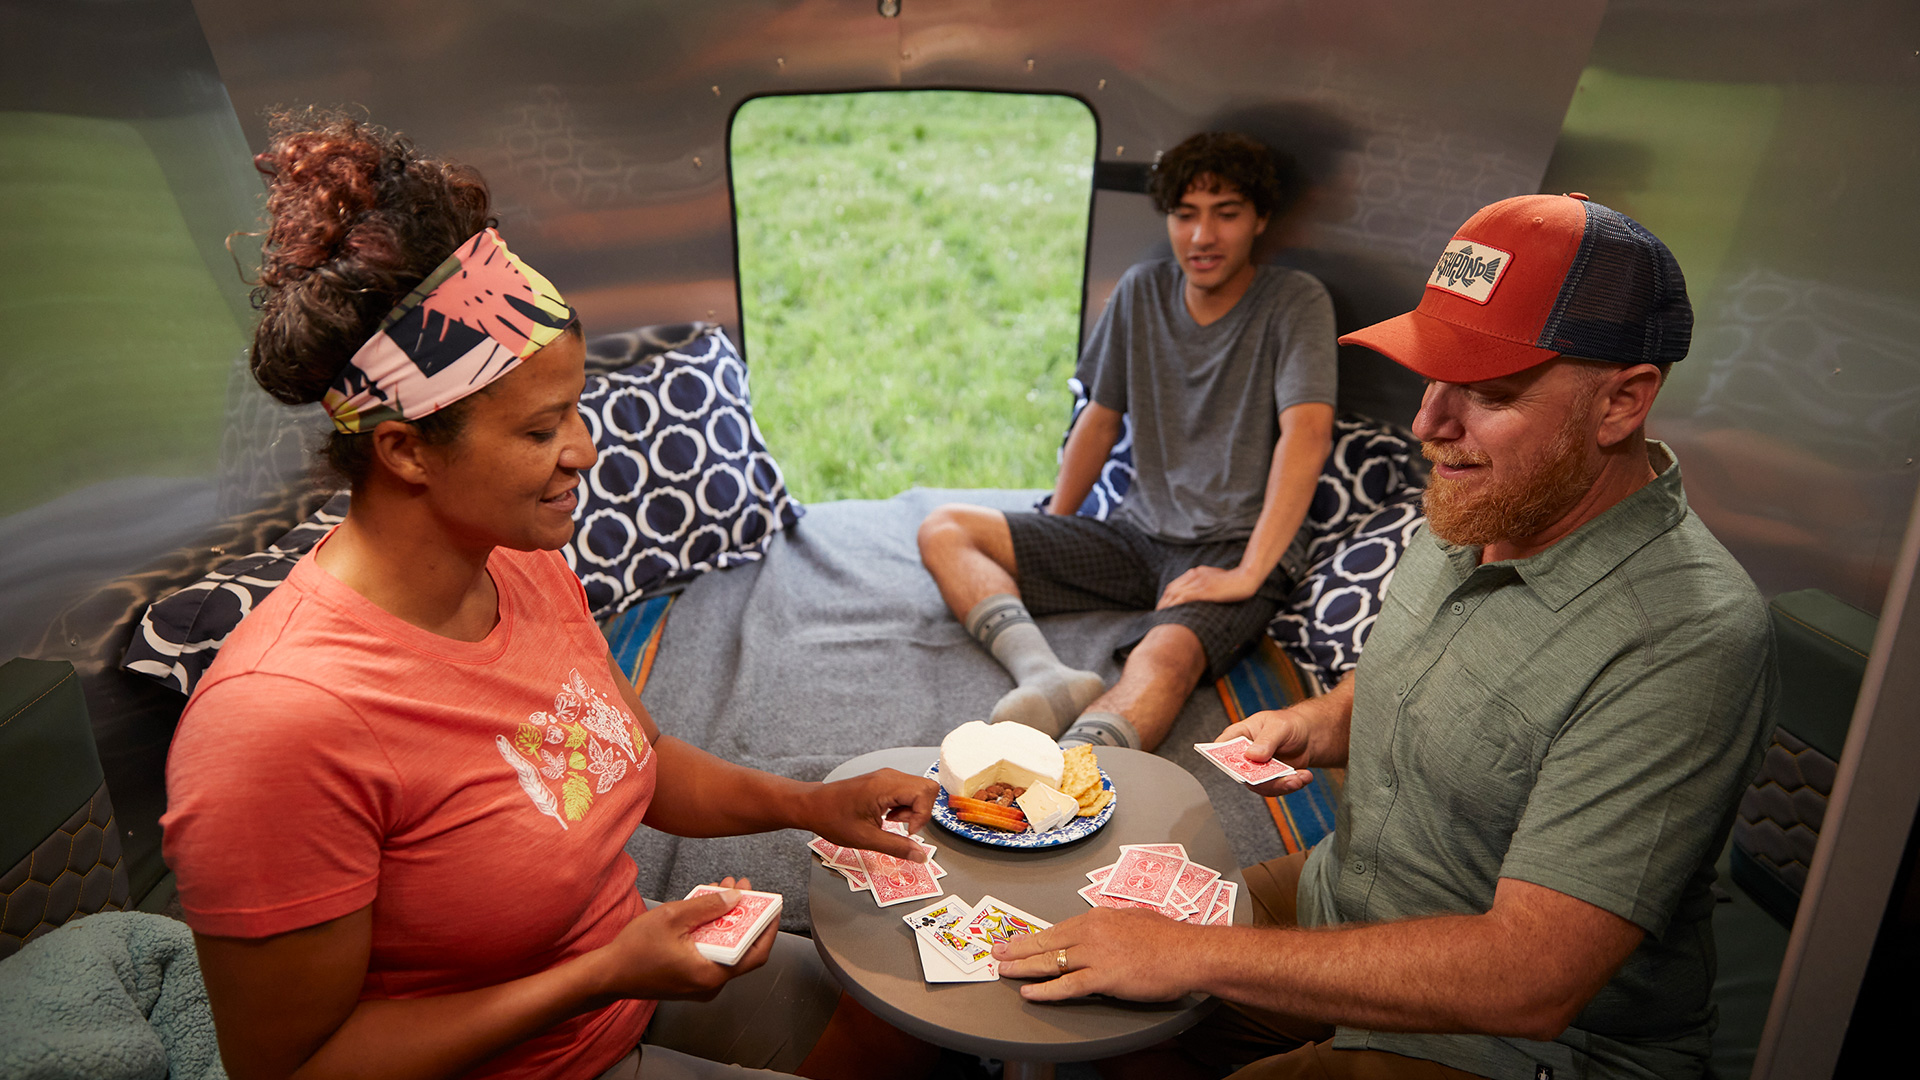 Airstream-Basecamp-Rear-Bed-and-Dinette-1-Table-Up-Transition